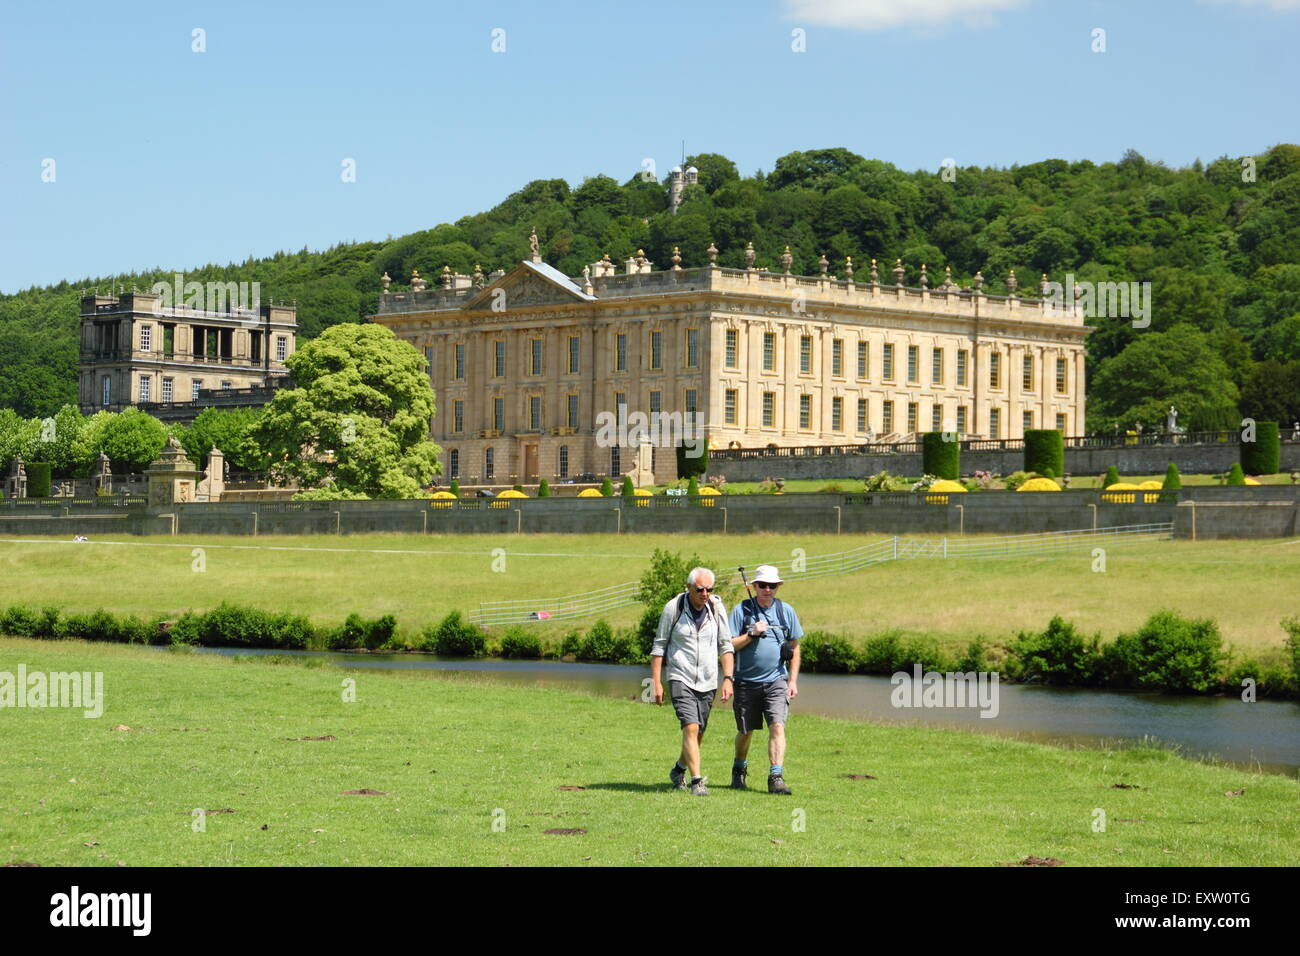 Two men walk on the banks of the River Derwent by Chatsworth House in the Peak District on a glorious summer day, - Stock Image